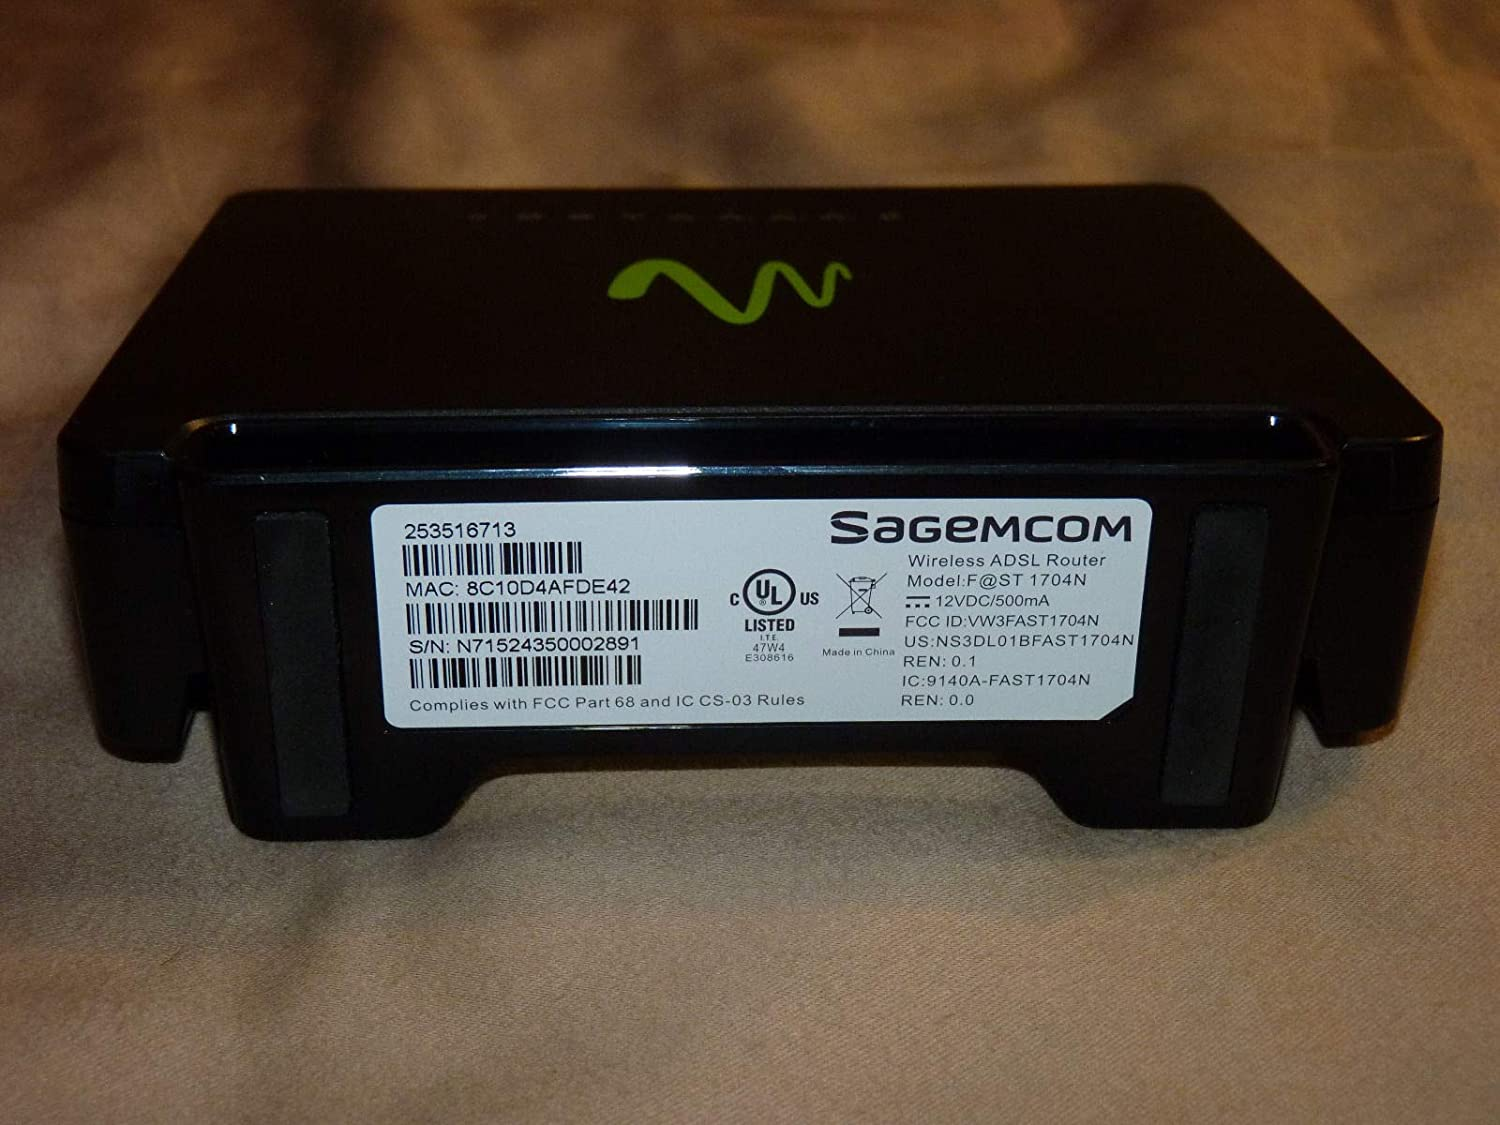 Sagemcom Windstream 802 11n N Wireless Modem Router Model: F@ST 1704n